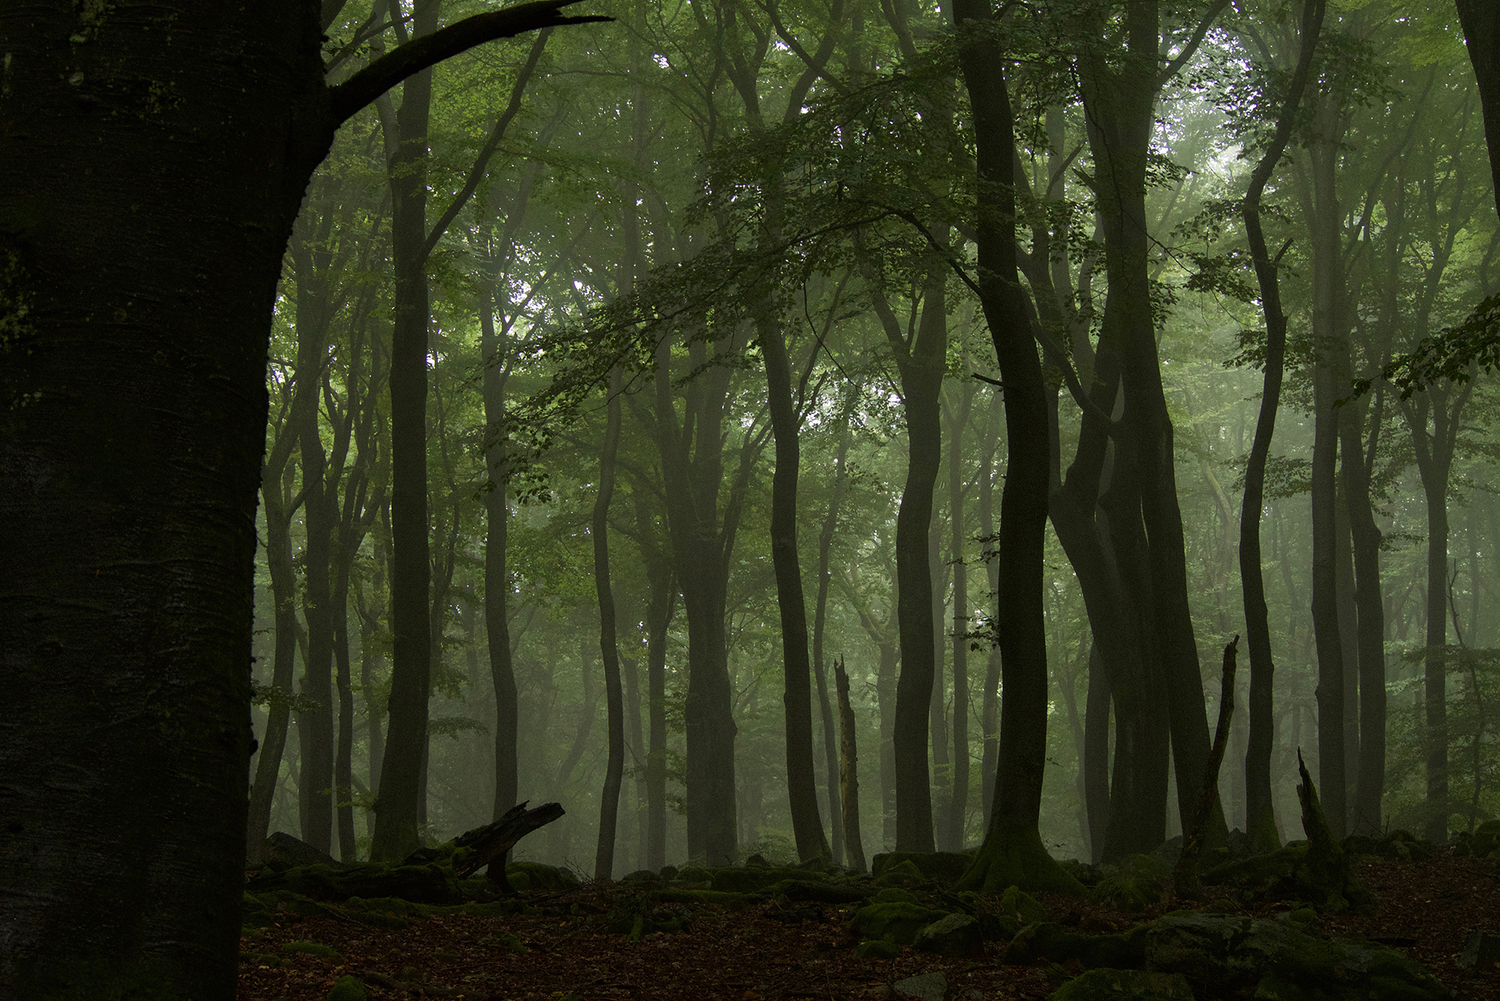 Beech forest (Fagus sylvatica). Beech forests, not currently managed, usually have large canopies and a high structural heterogeneity (vertical and horizontal).